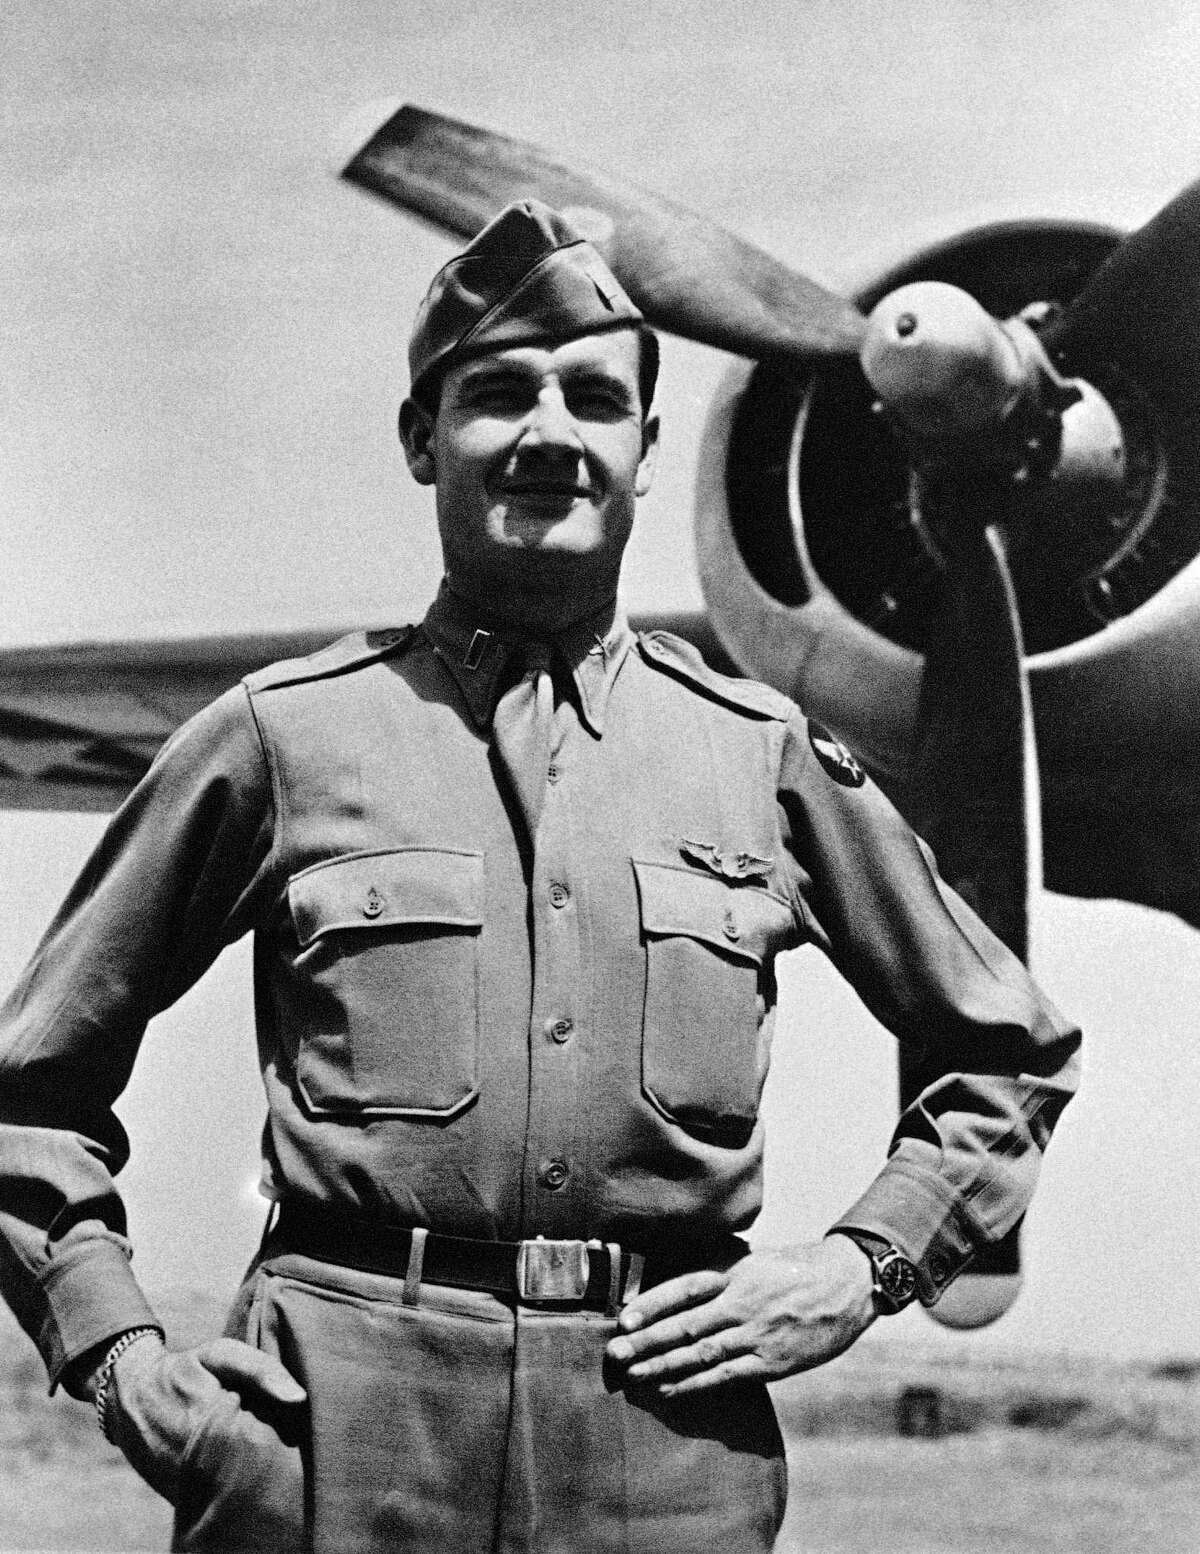 This 1944 photo shows George McGovern when he received the Distinguished Flying Cross. McGovern died Oct. 21, 2012.